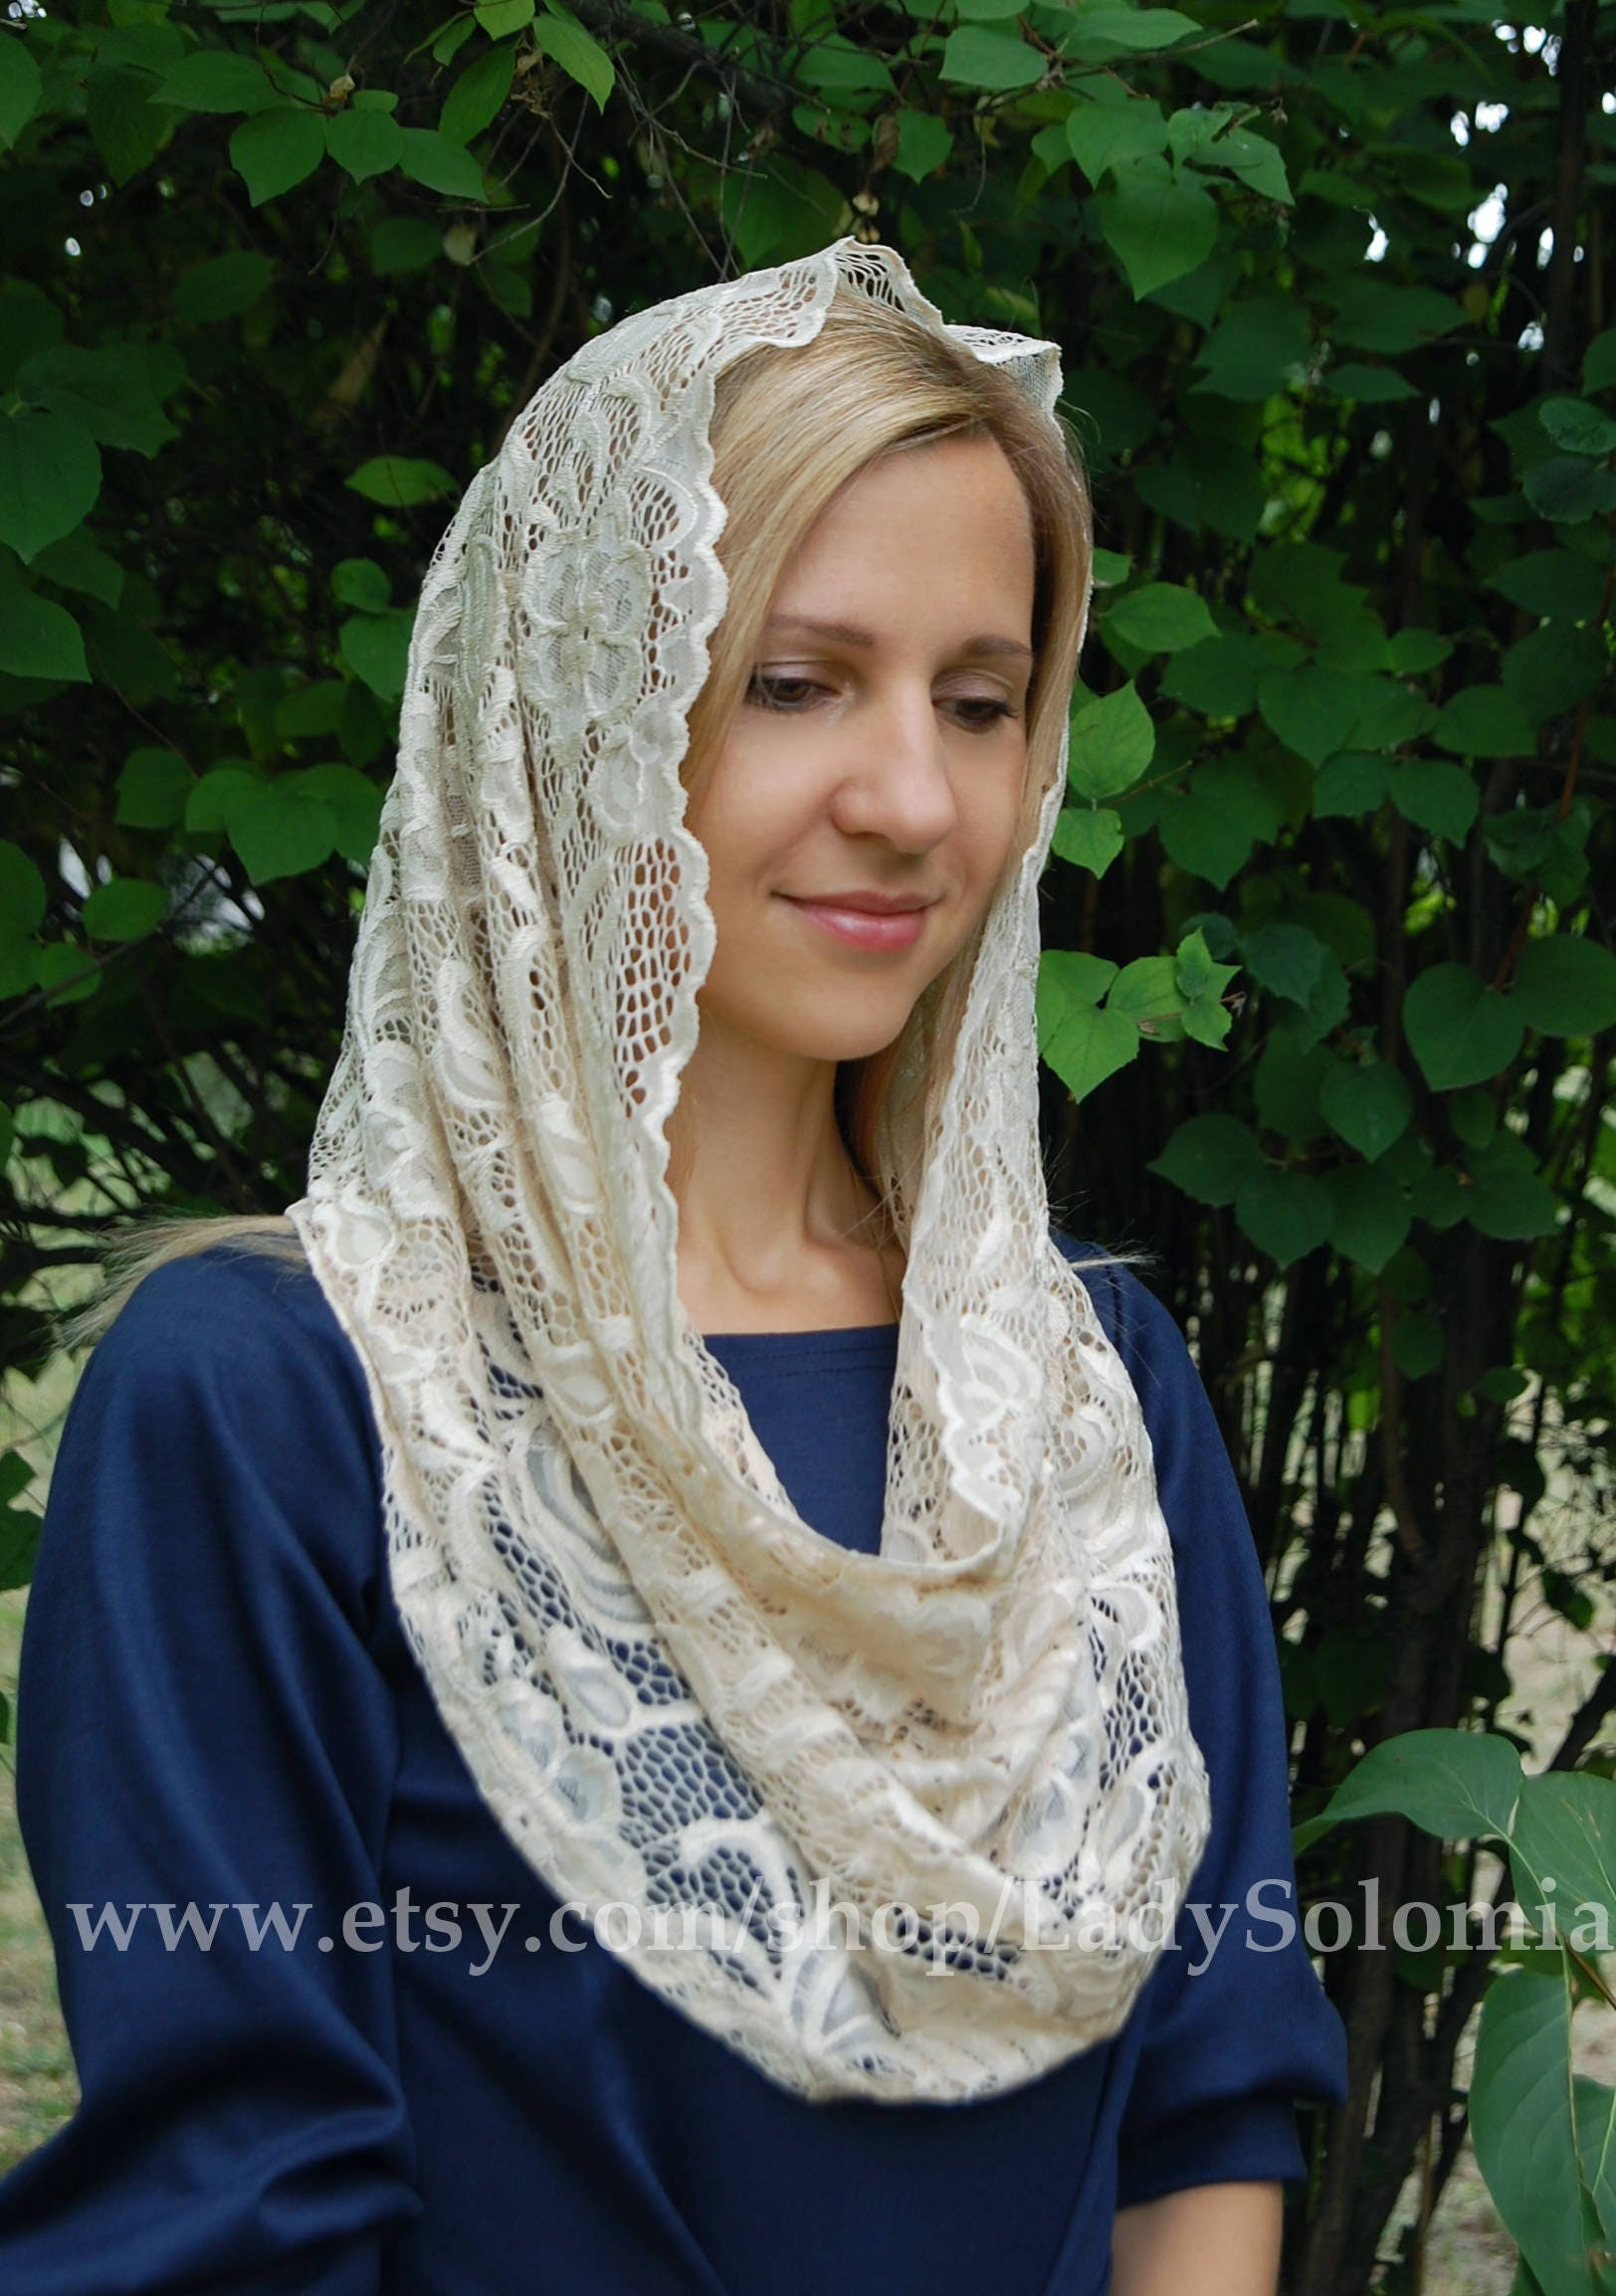 infinity veil. beige lace scarf, infinity veil, head coverings religious, traditional catholic infinity, veil s